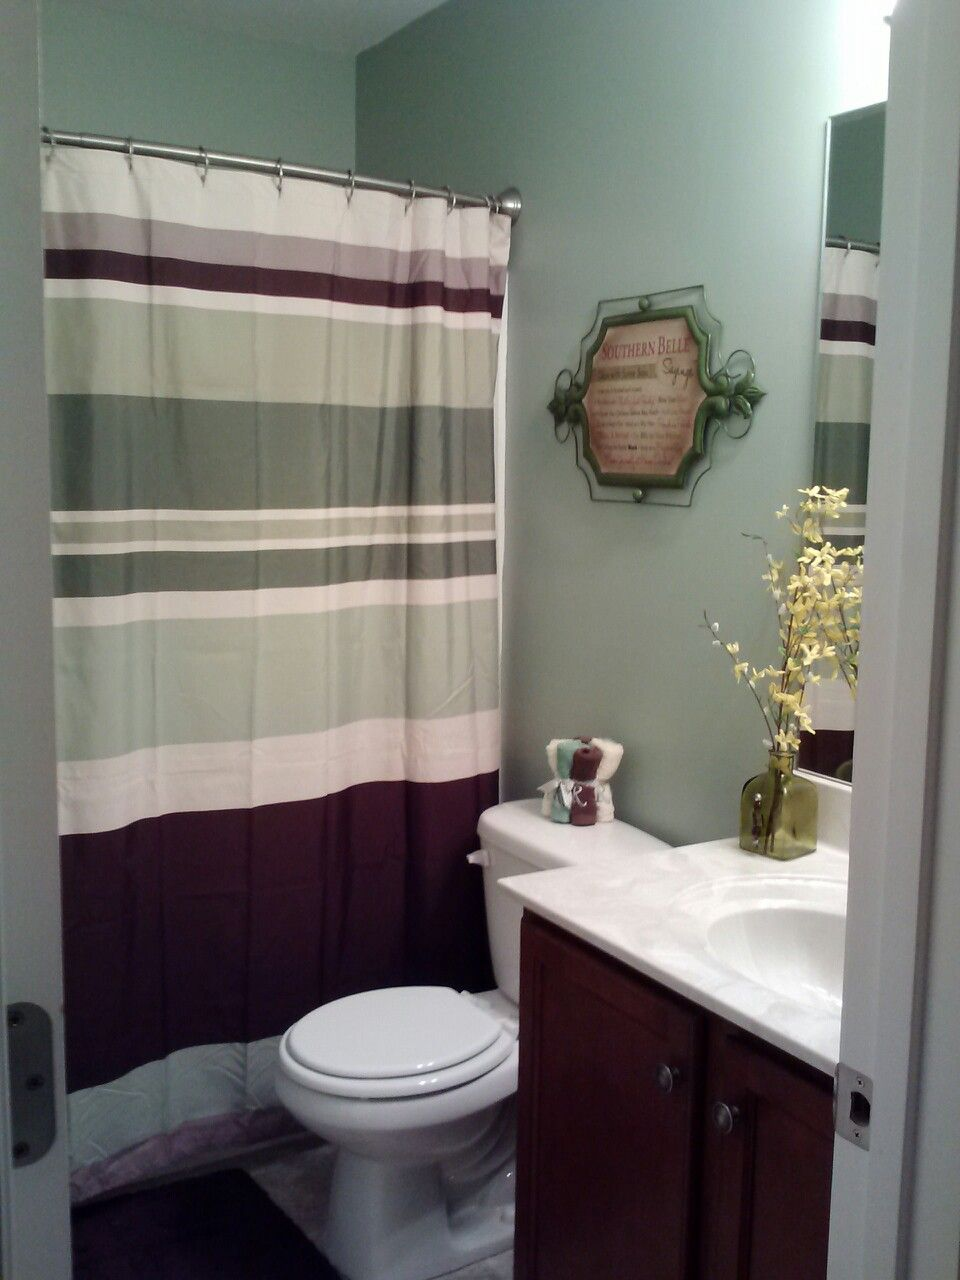 Green and brown bathroom 28 images green and brown bathroom 28 images 20 green bathroom